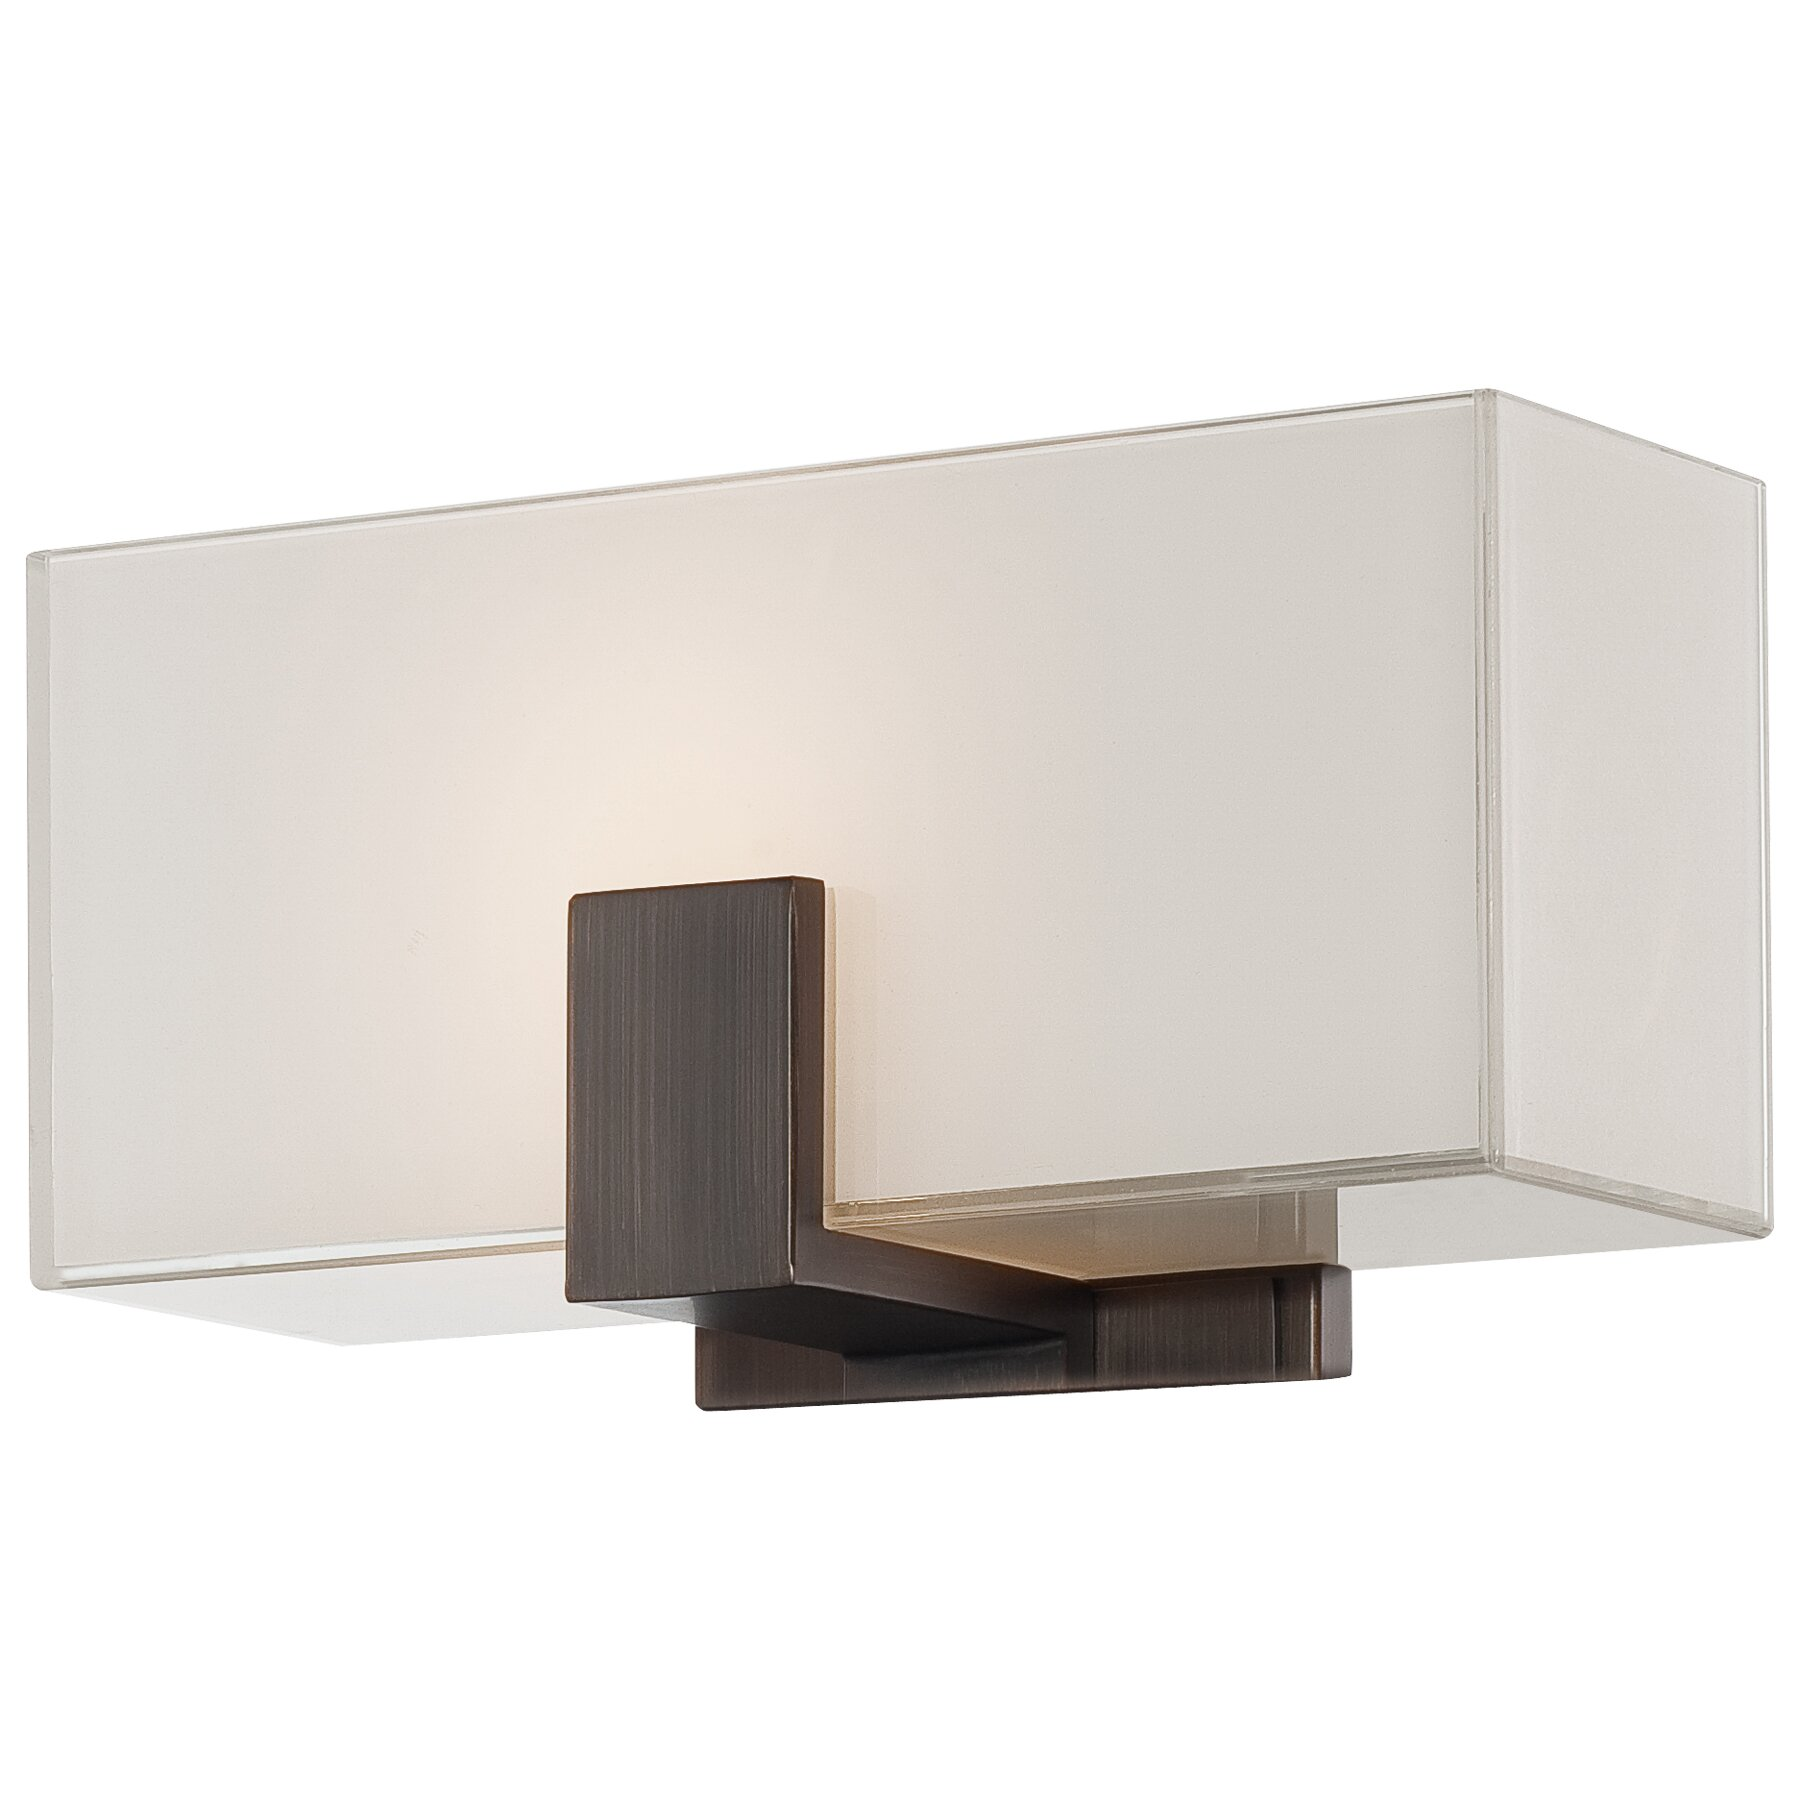 George Kovacs 1 Light Wall Sconce With Square Shades Reviews Wayfair